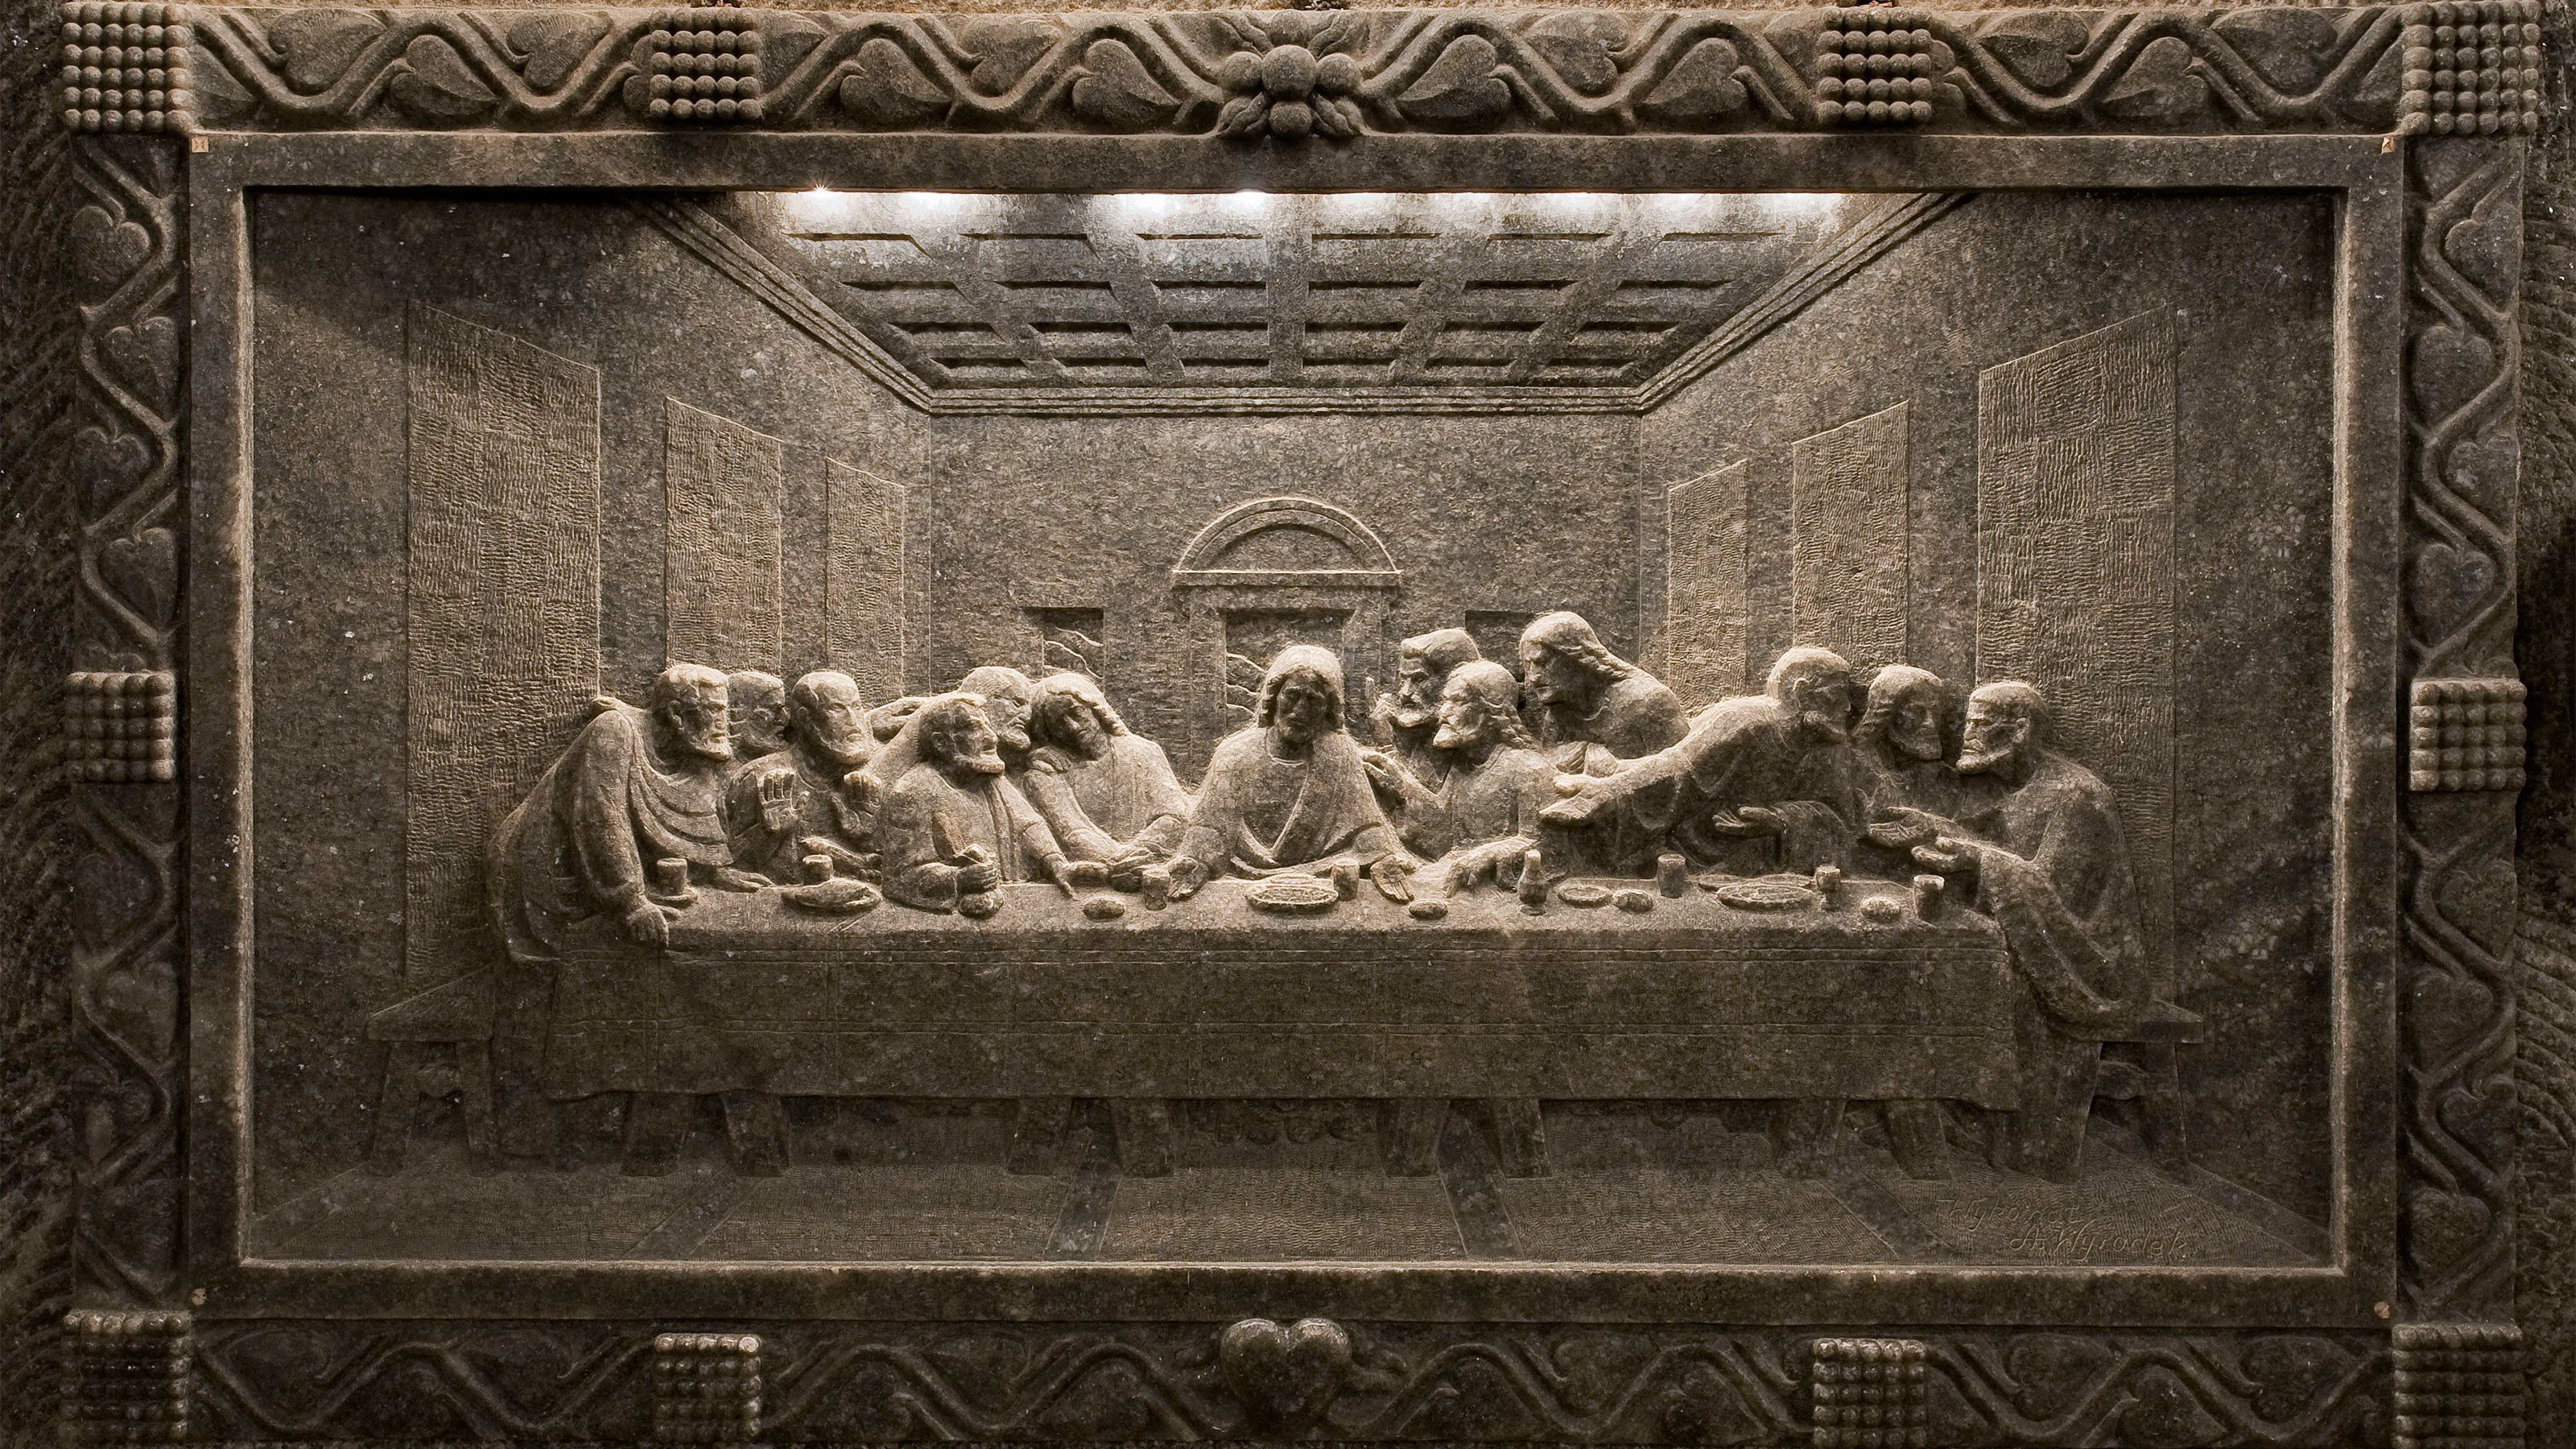 A relief sculpture of the last supper in Wieliczka